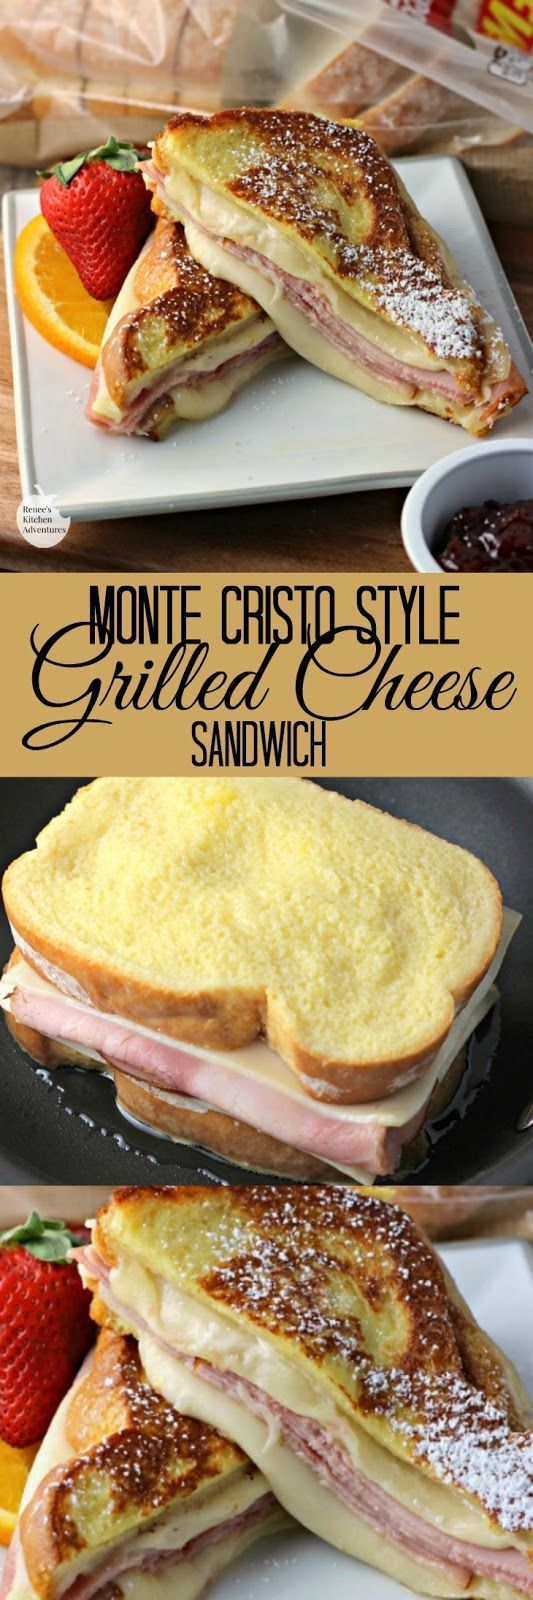 Monte Cristo Style Grilled Cheese Sandwich | by Renee's Kitchen Adventures - easy recipe for sweet and savory grilled cheese sandwich with ham and swiss. Great for lunch or dinner.